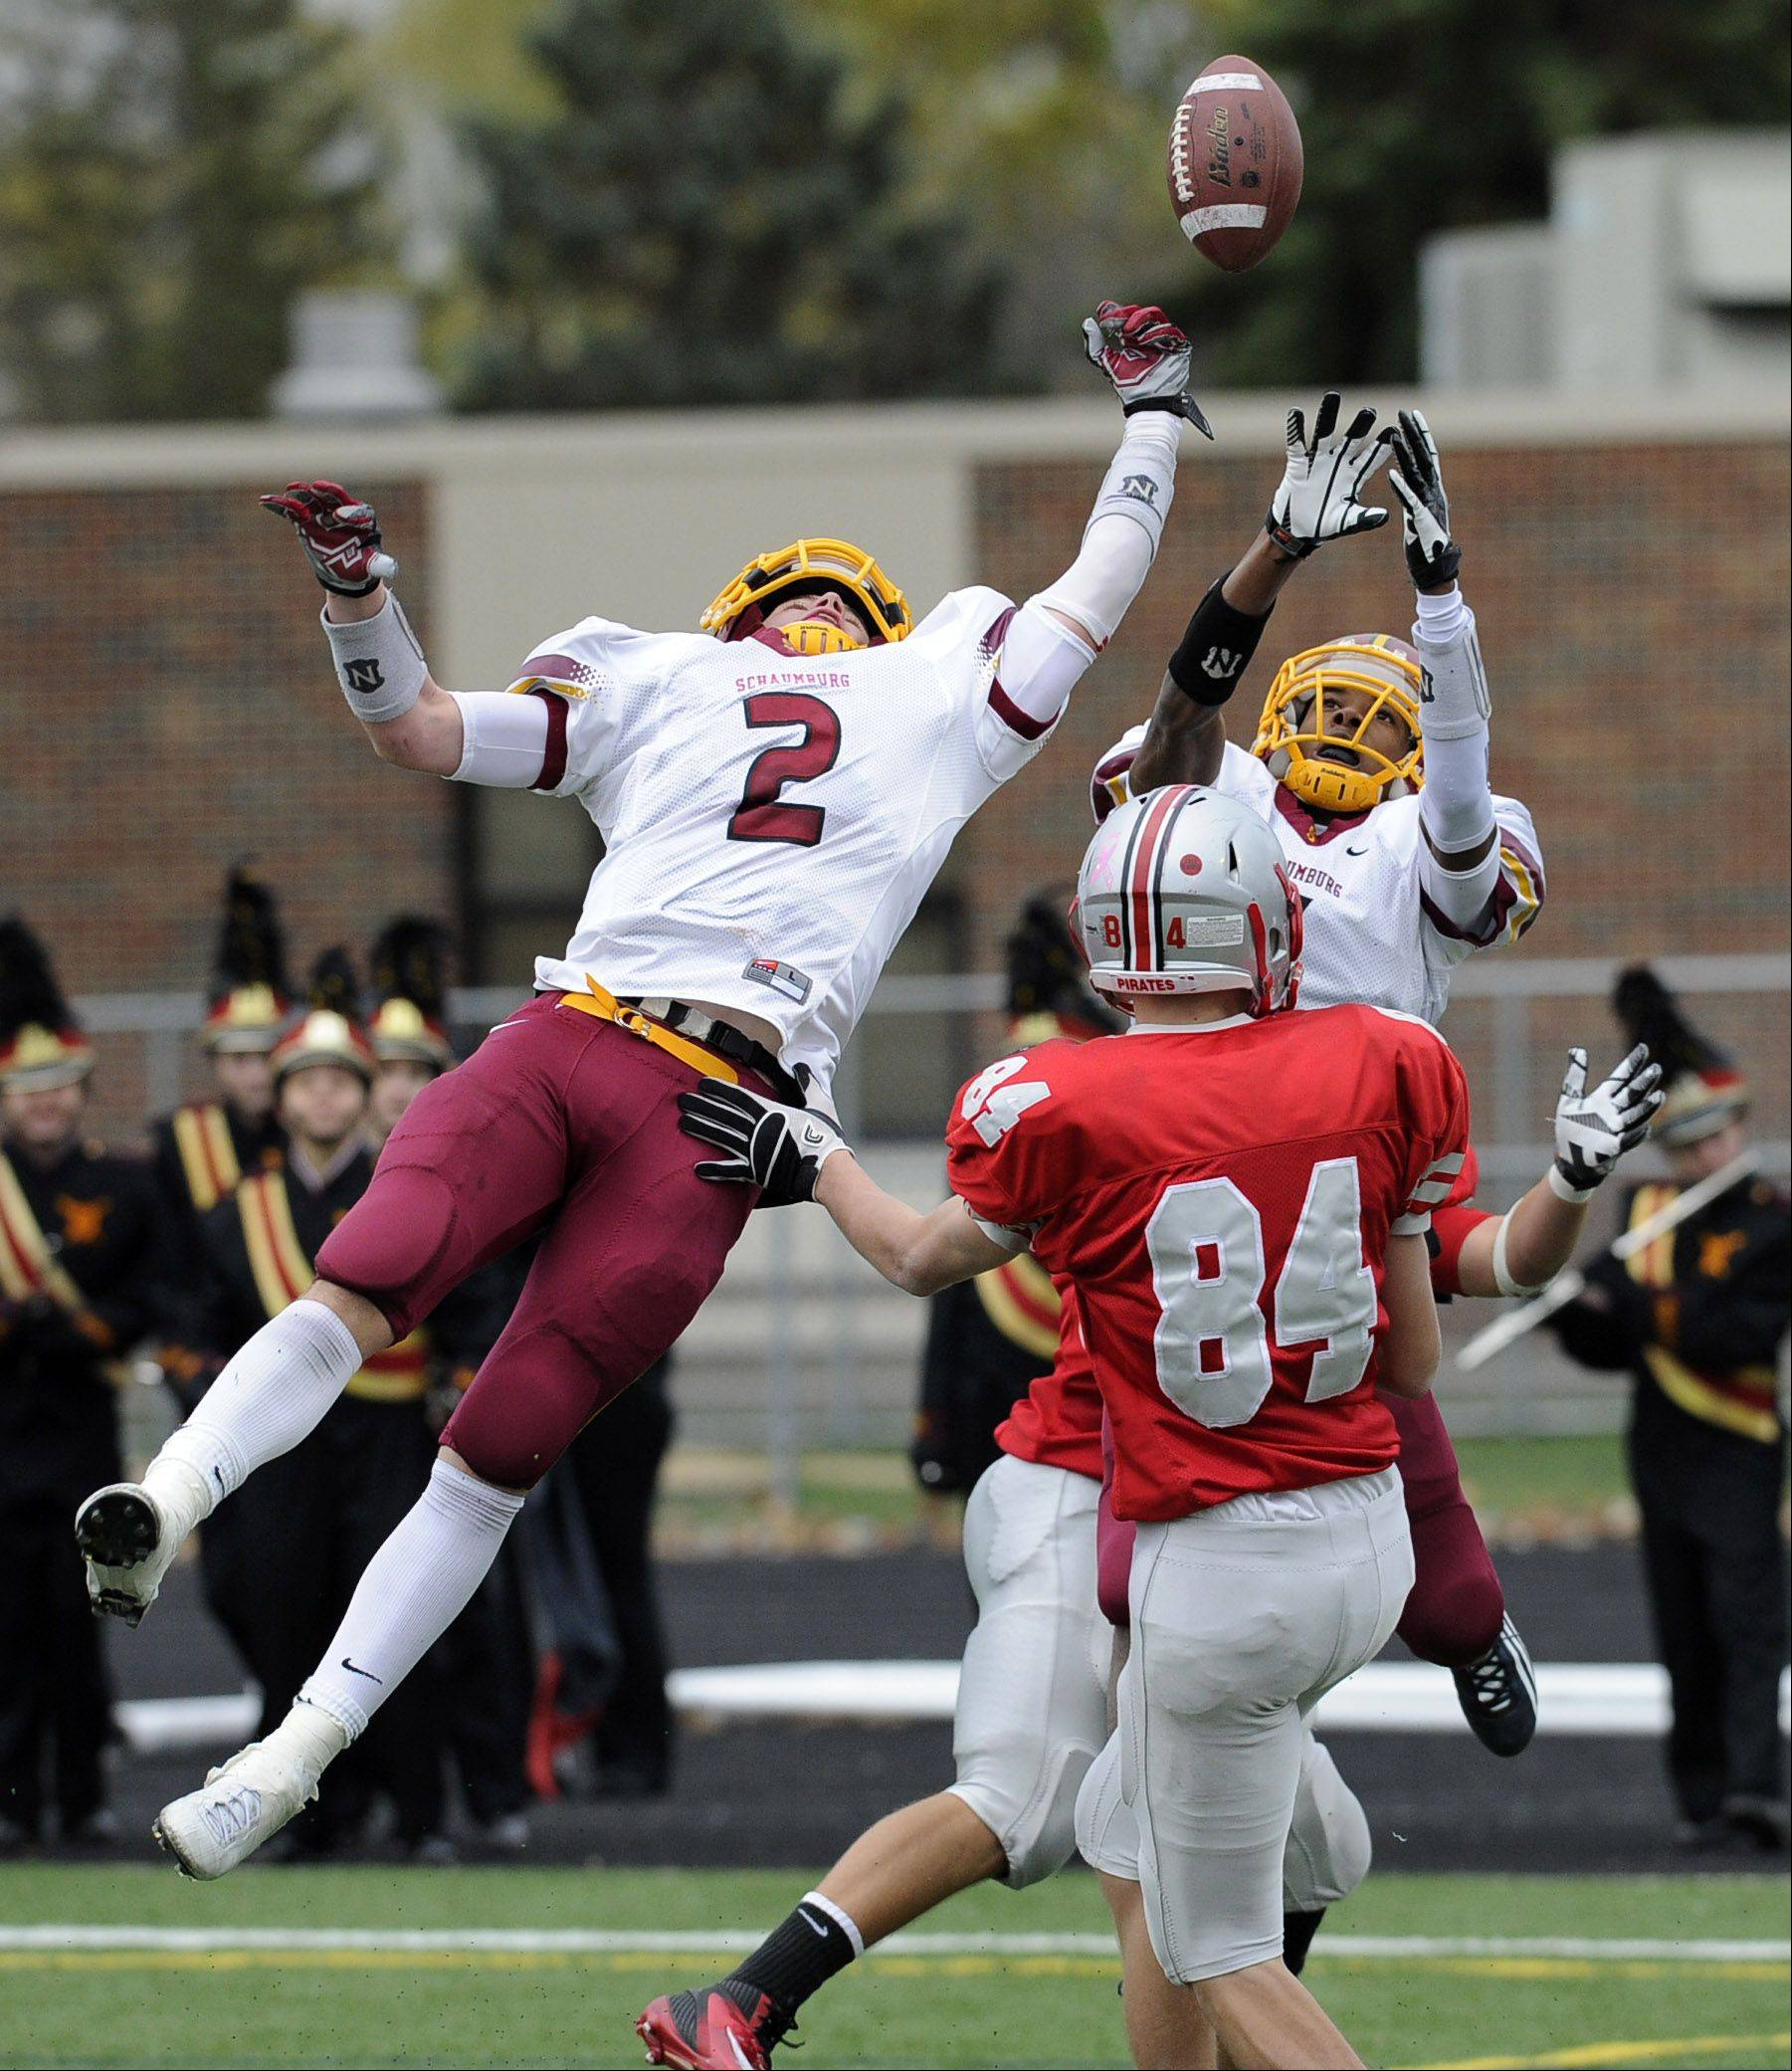 In a Hail-Mary pass thrown late in the second quarter by Palatine, Schaumburg's Cole Reyes tips the ball and it is nearly caught by Palatine's Jesse Bobbit but it hit the ground first in Palatine's victory over Schaumburg in the Class 8A playoffs at Palatine High School on Saturday.